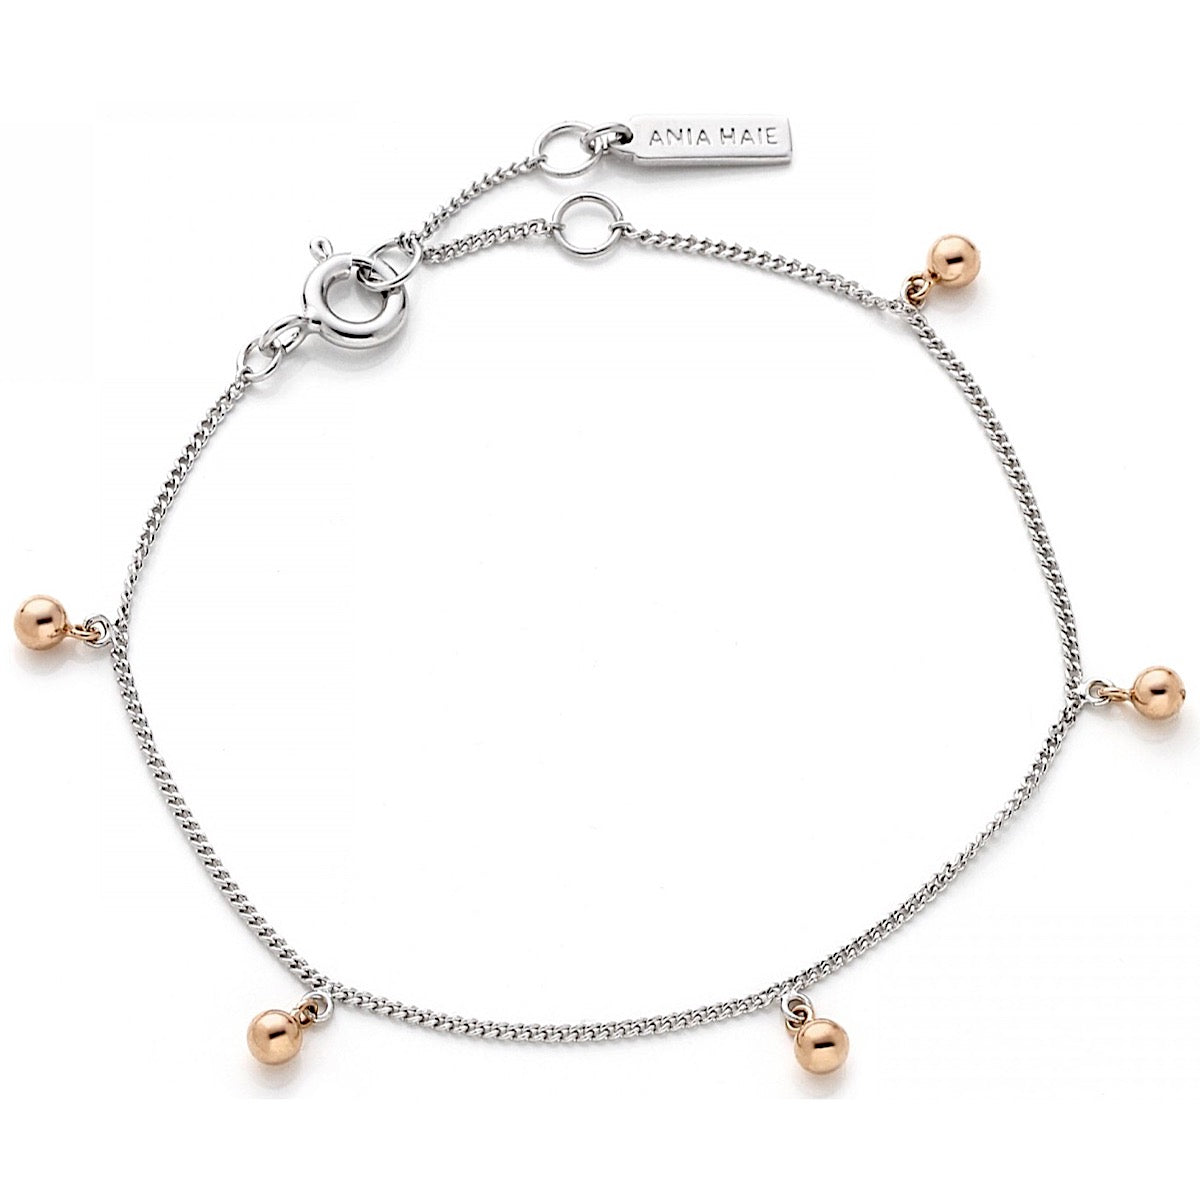 Ania Haie Silver/Rose Gold Orbit Drop Balls Bracelet | More Than Just at Gift | Narborough Hall